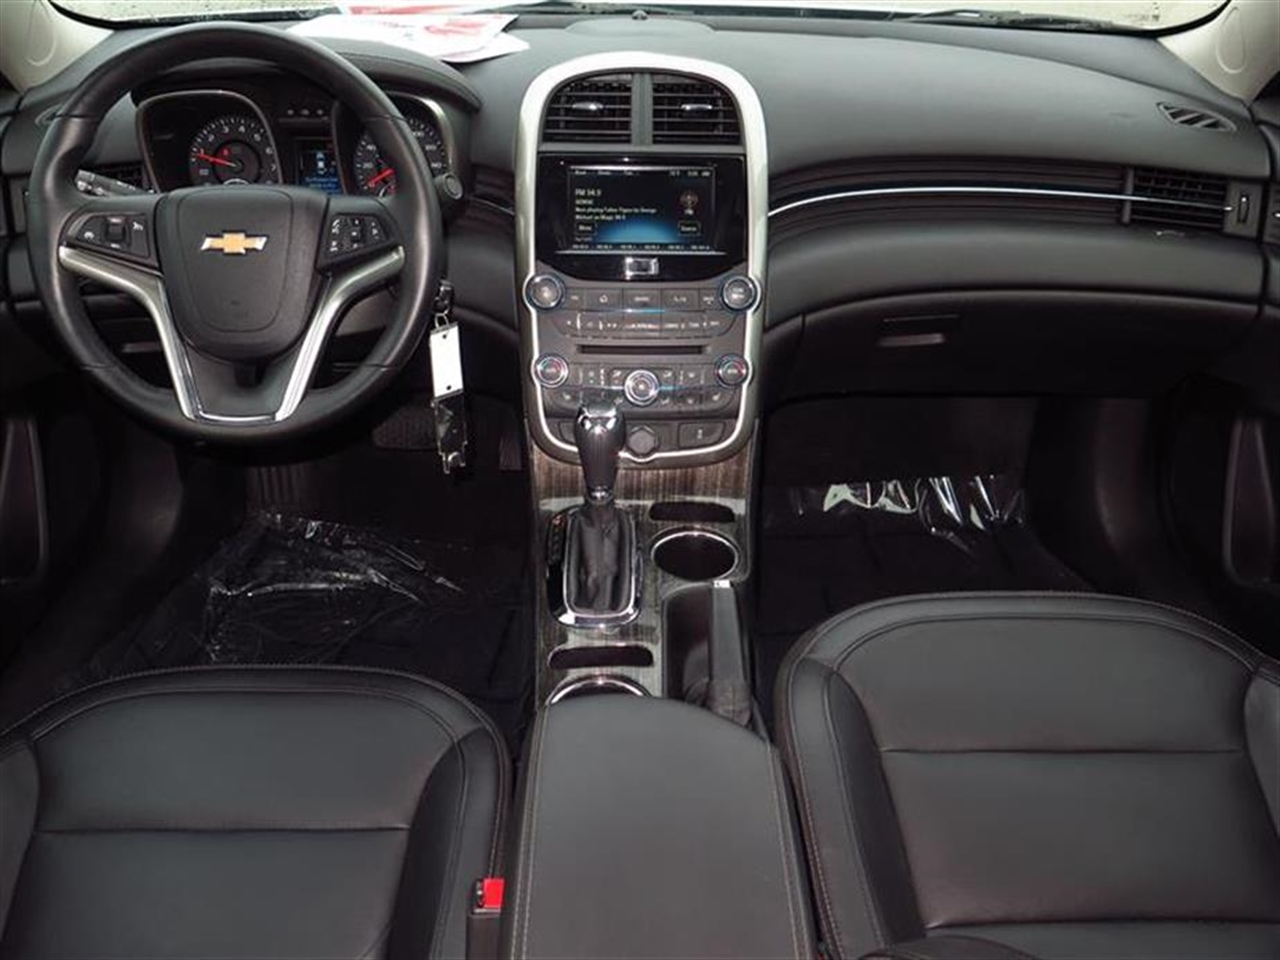 2014 CHEVROLET MALIBU 4dr Sdn LTZ w1LZ 39337 miles Air conditioning dual-zone automatic climate